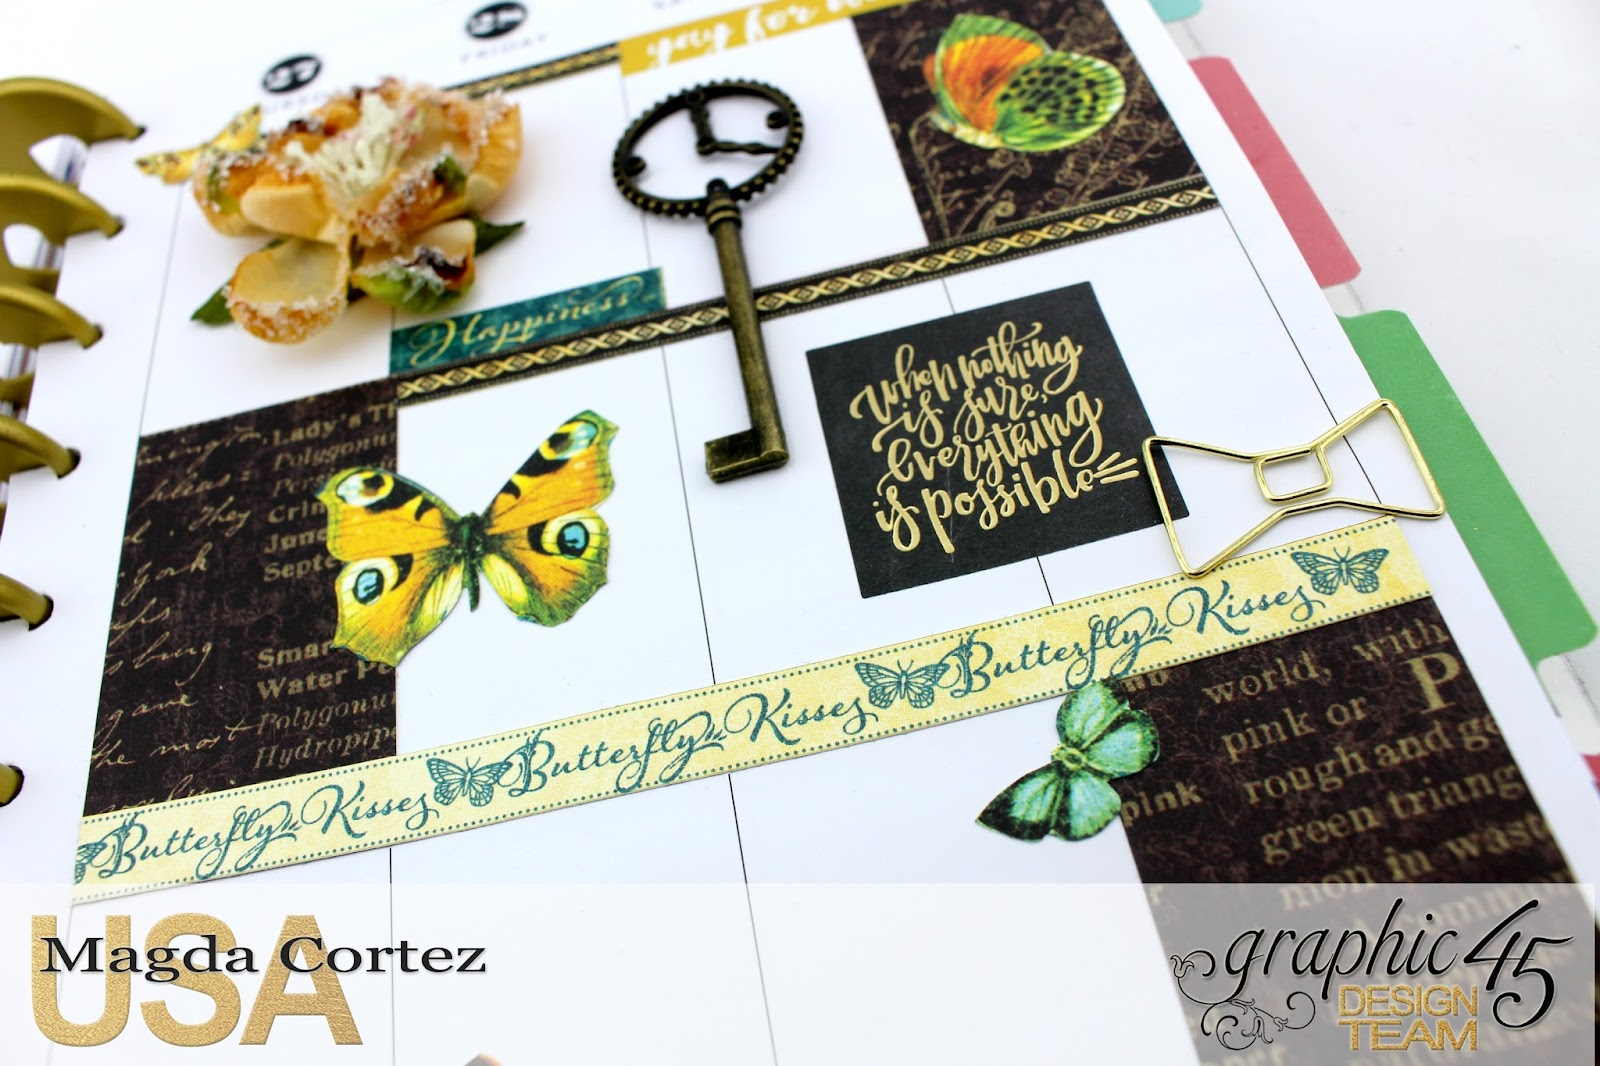 My JULY G45 Planner, Nature Sketchbook By Magda Cortez, Product by G45, Photo 20 of 20.jpg